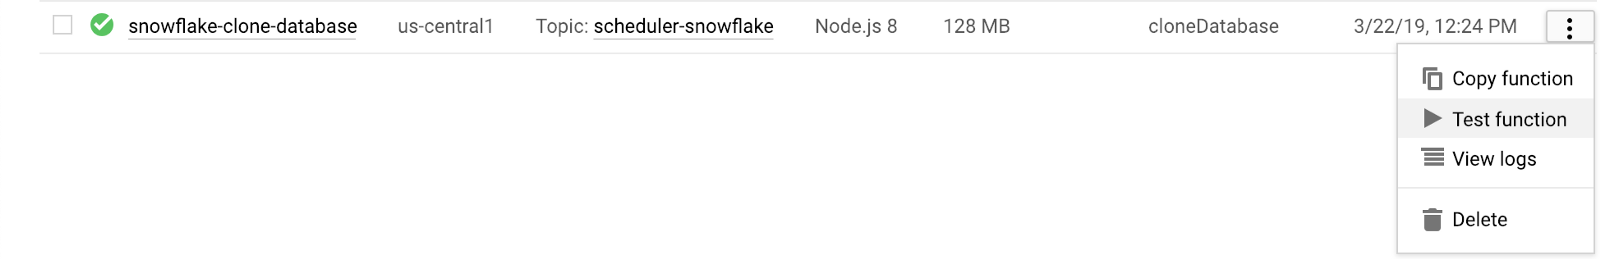 Automating Your Snowflake Database Cloning with GCP — erteso